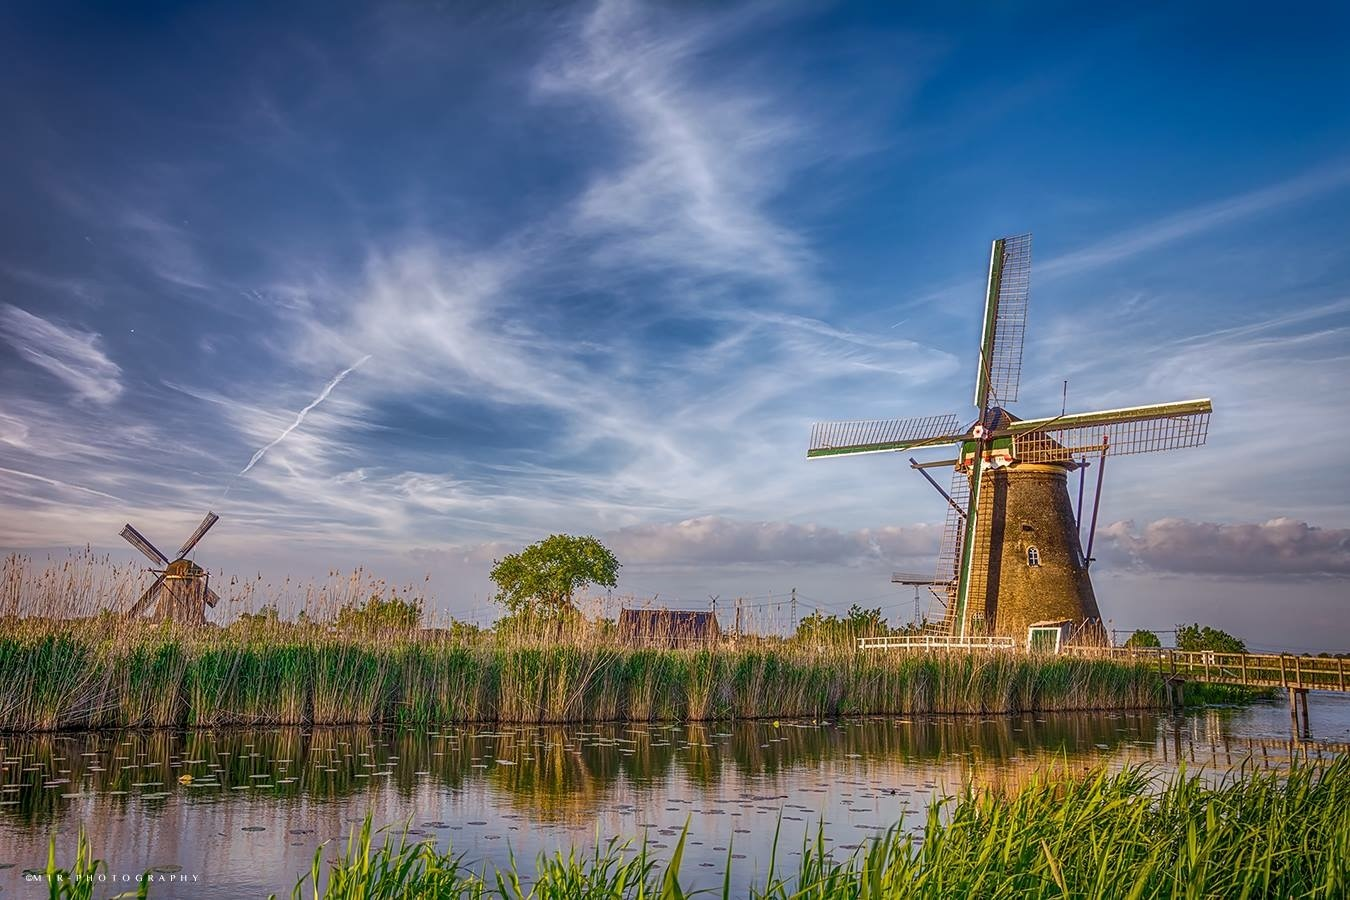 Wind and Mills by m1rphotography